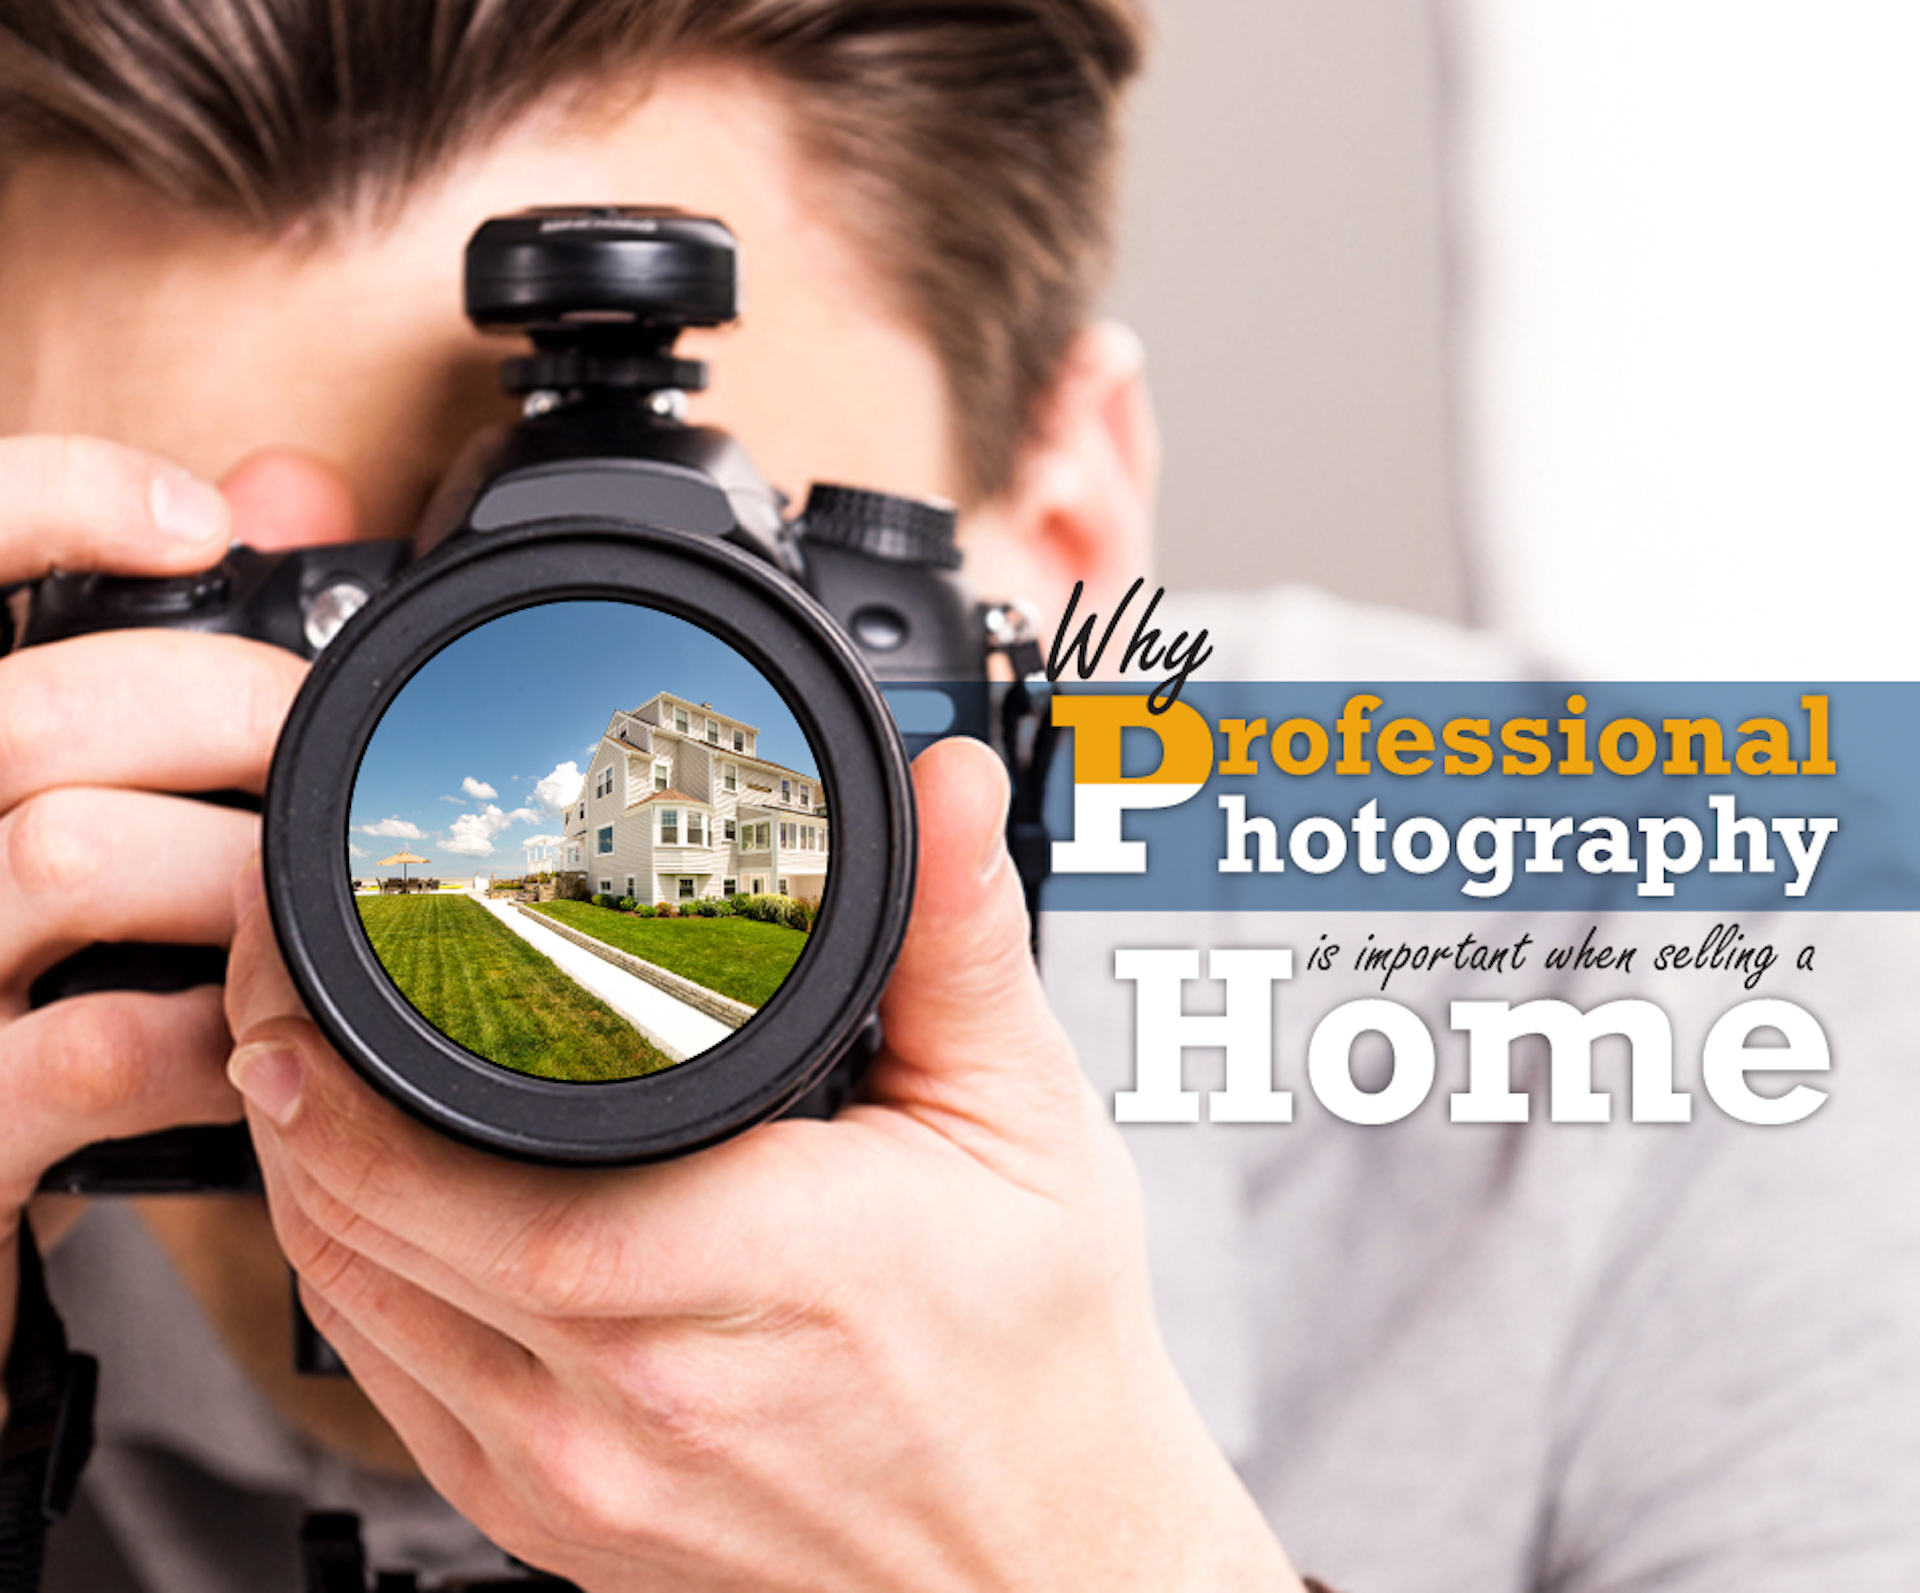 Man pointing his camera towards a house